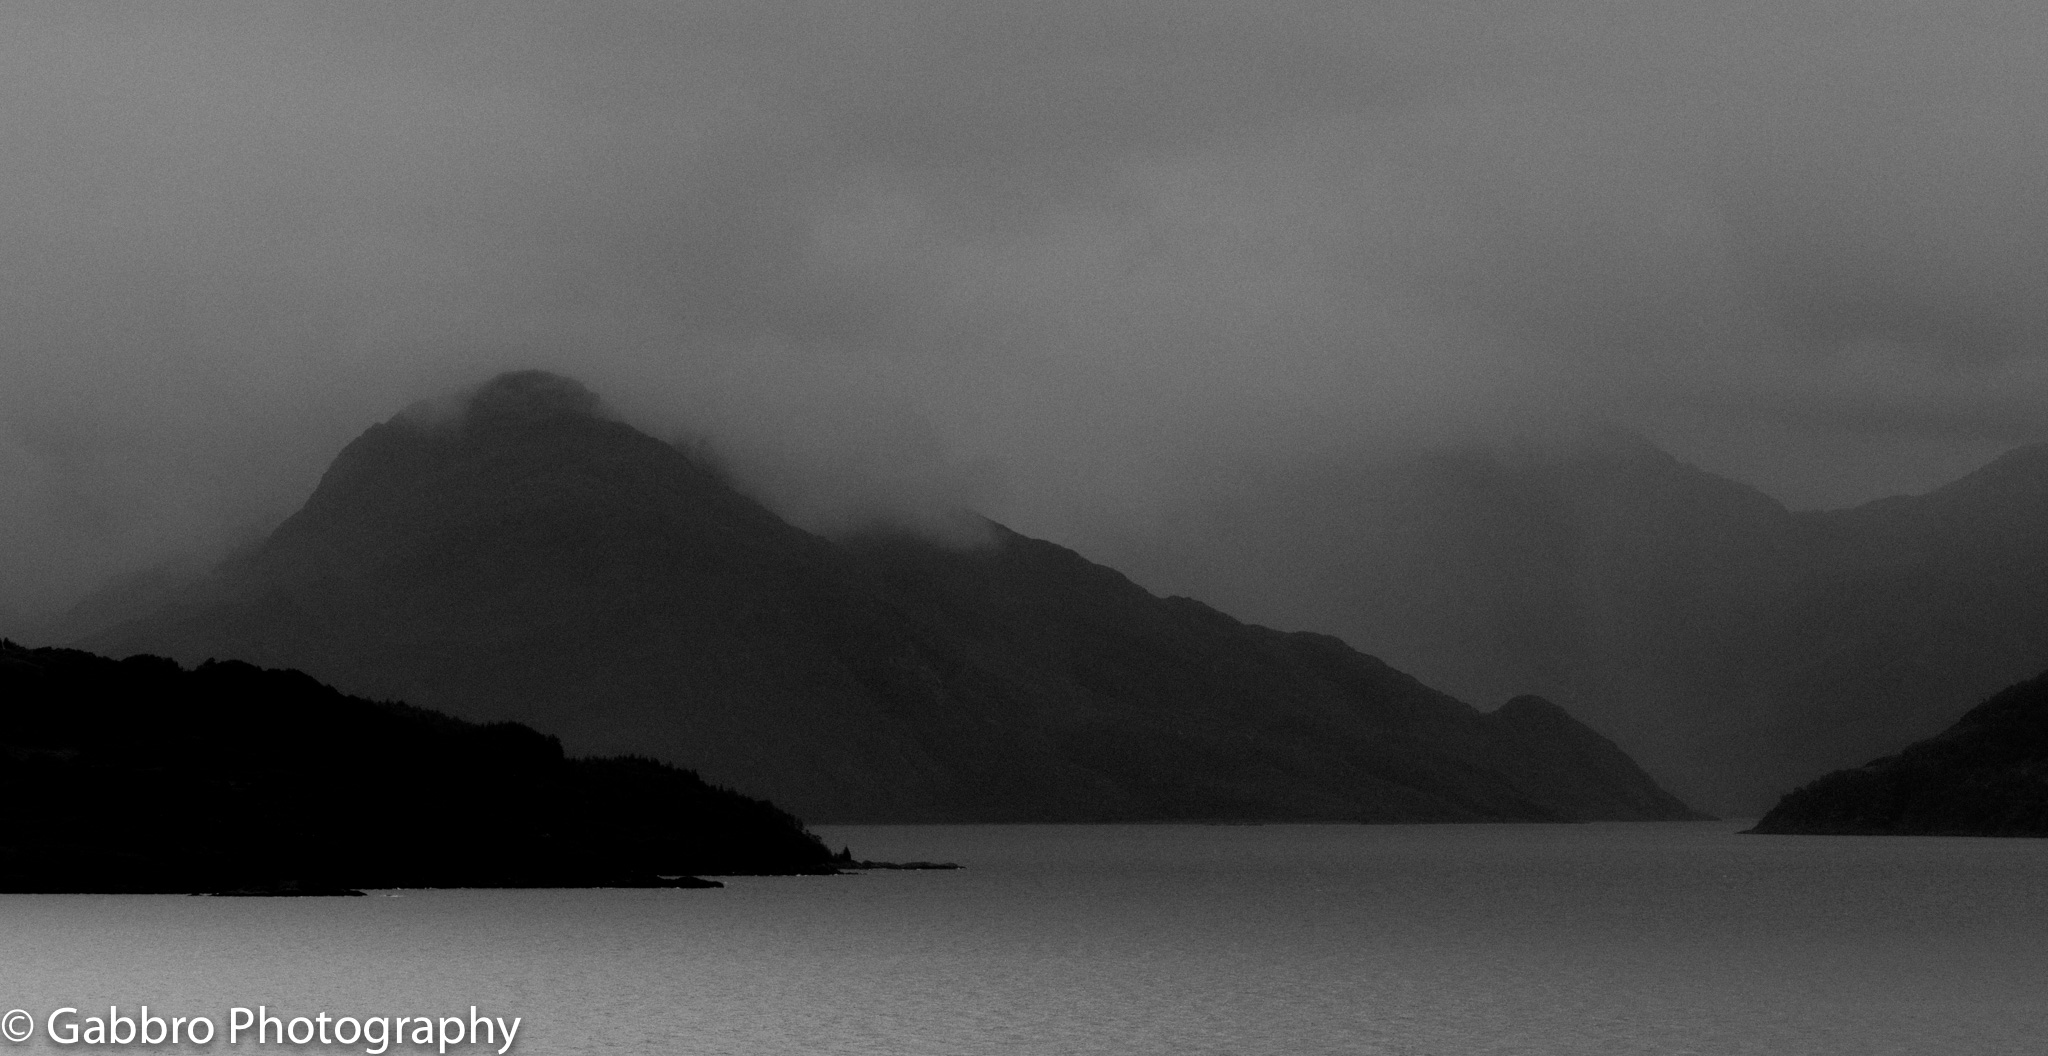 Loch Hourn from the Isle of Skye